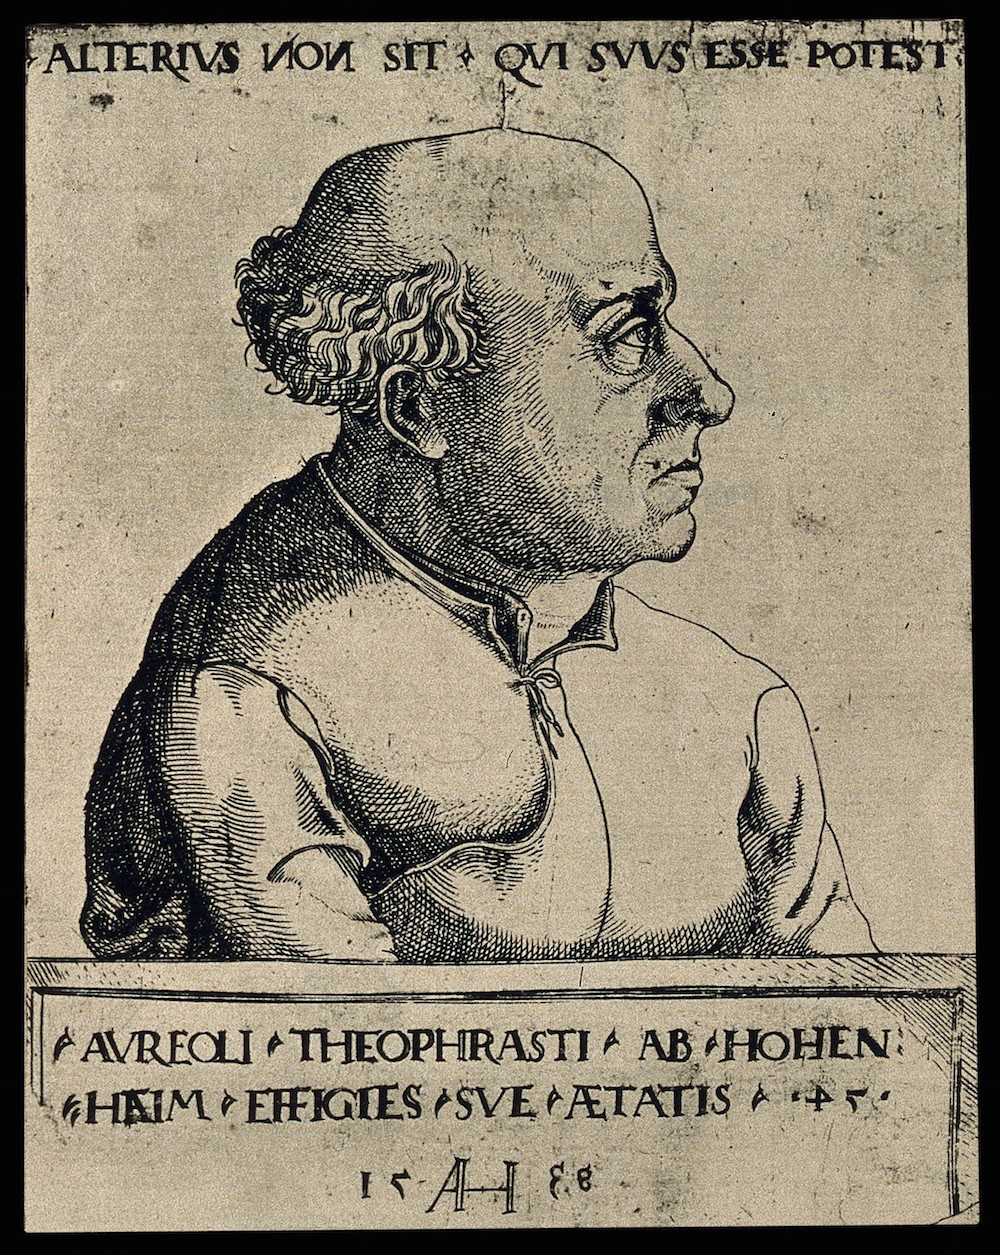 Paracelsus, the father of toxicology